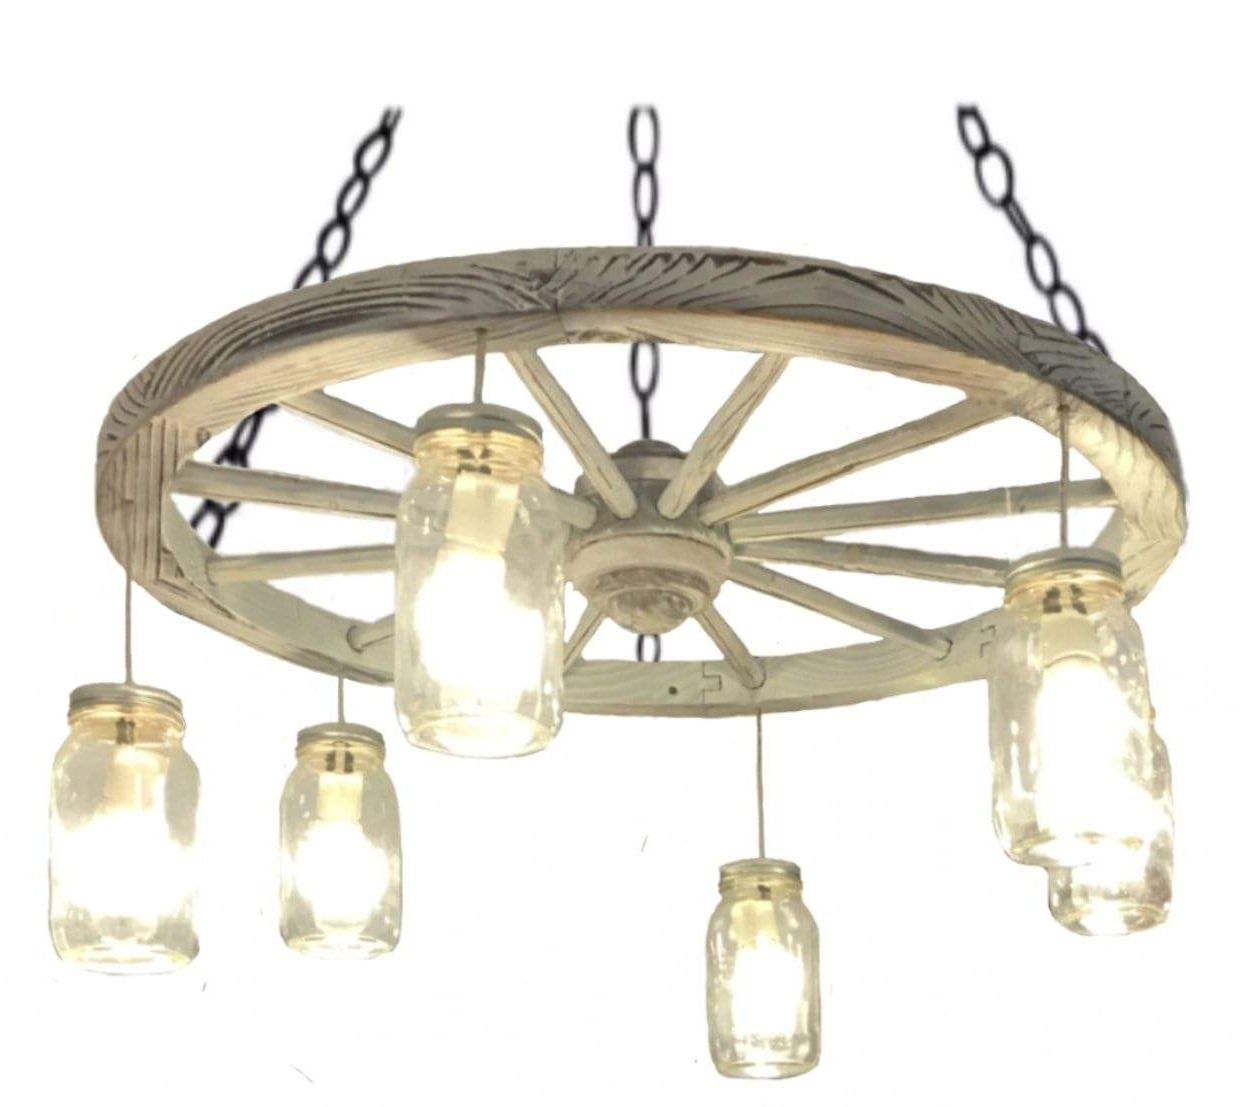 Products You With Regard To Widely Used Janette 5 Light Wagon Wheel Chandeliers (View 15 of 20)